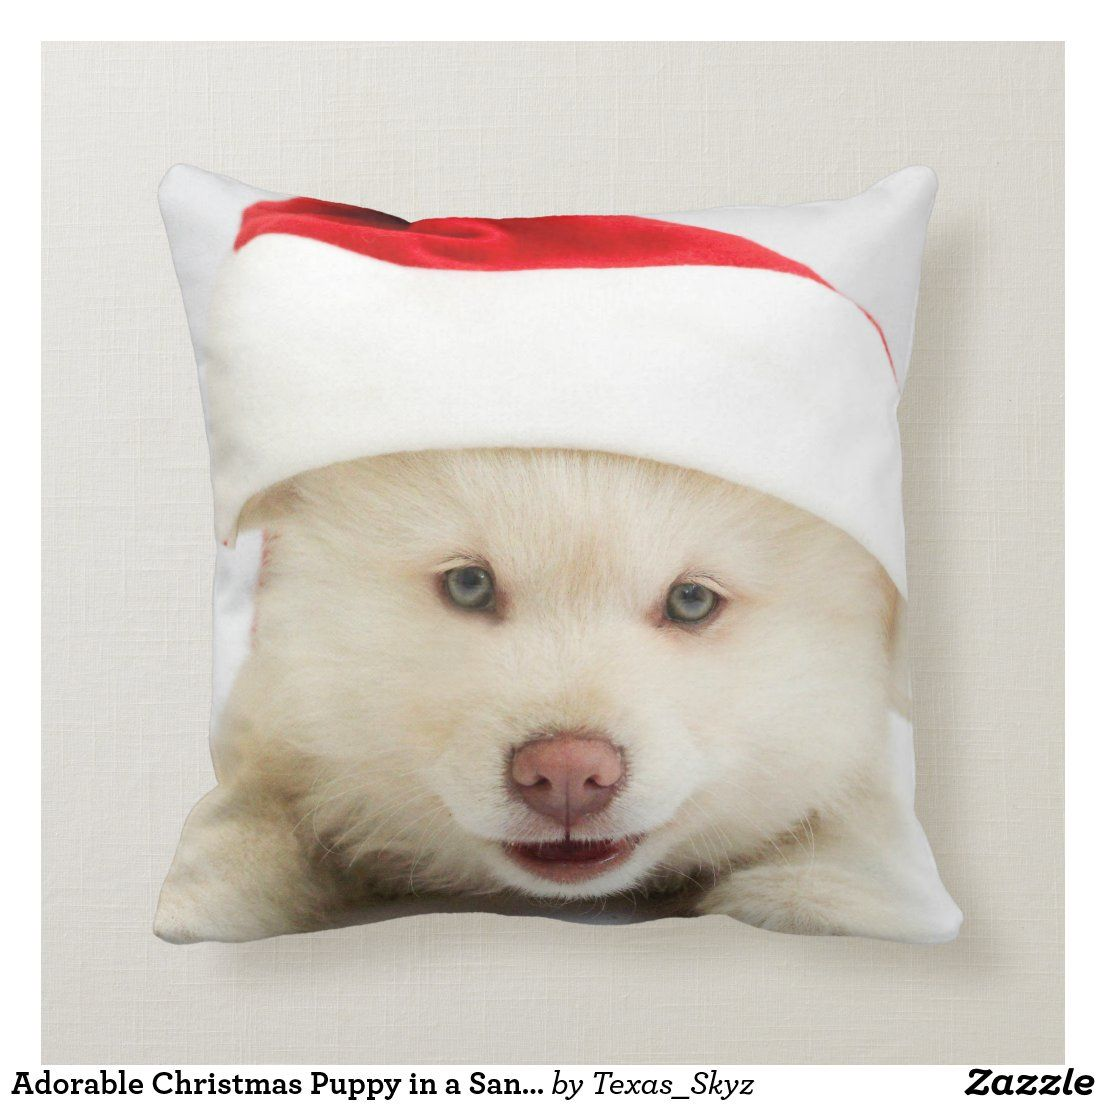 Adorable Christmas Puppy in a Santa Hat Cushion Zazzle